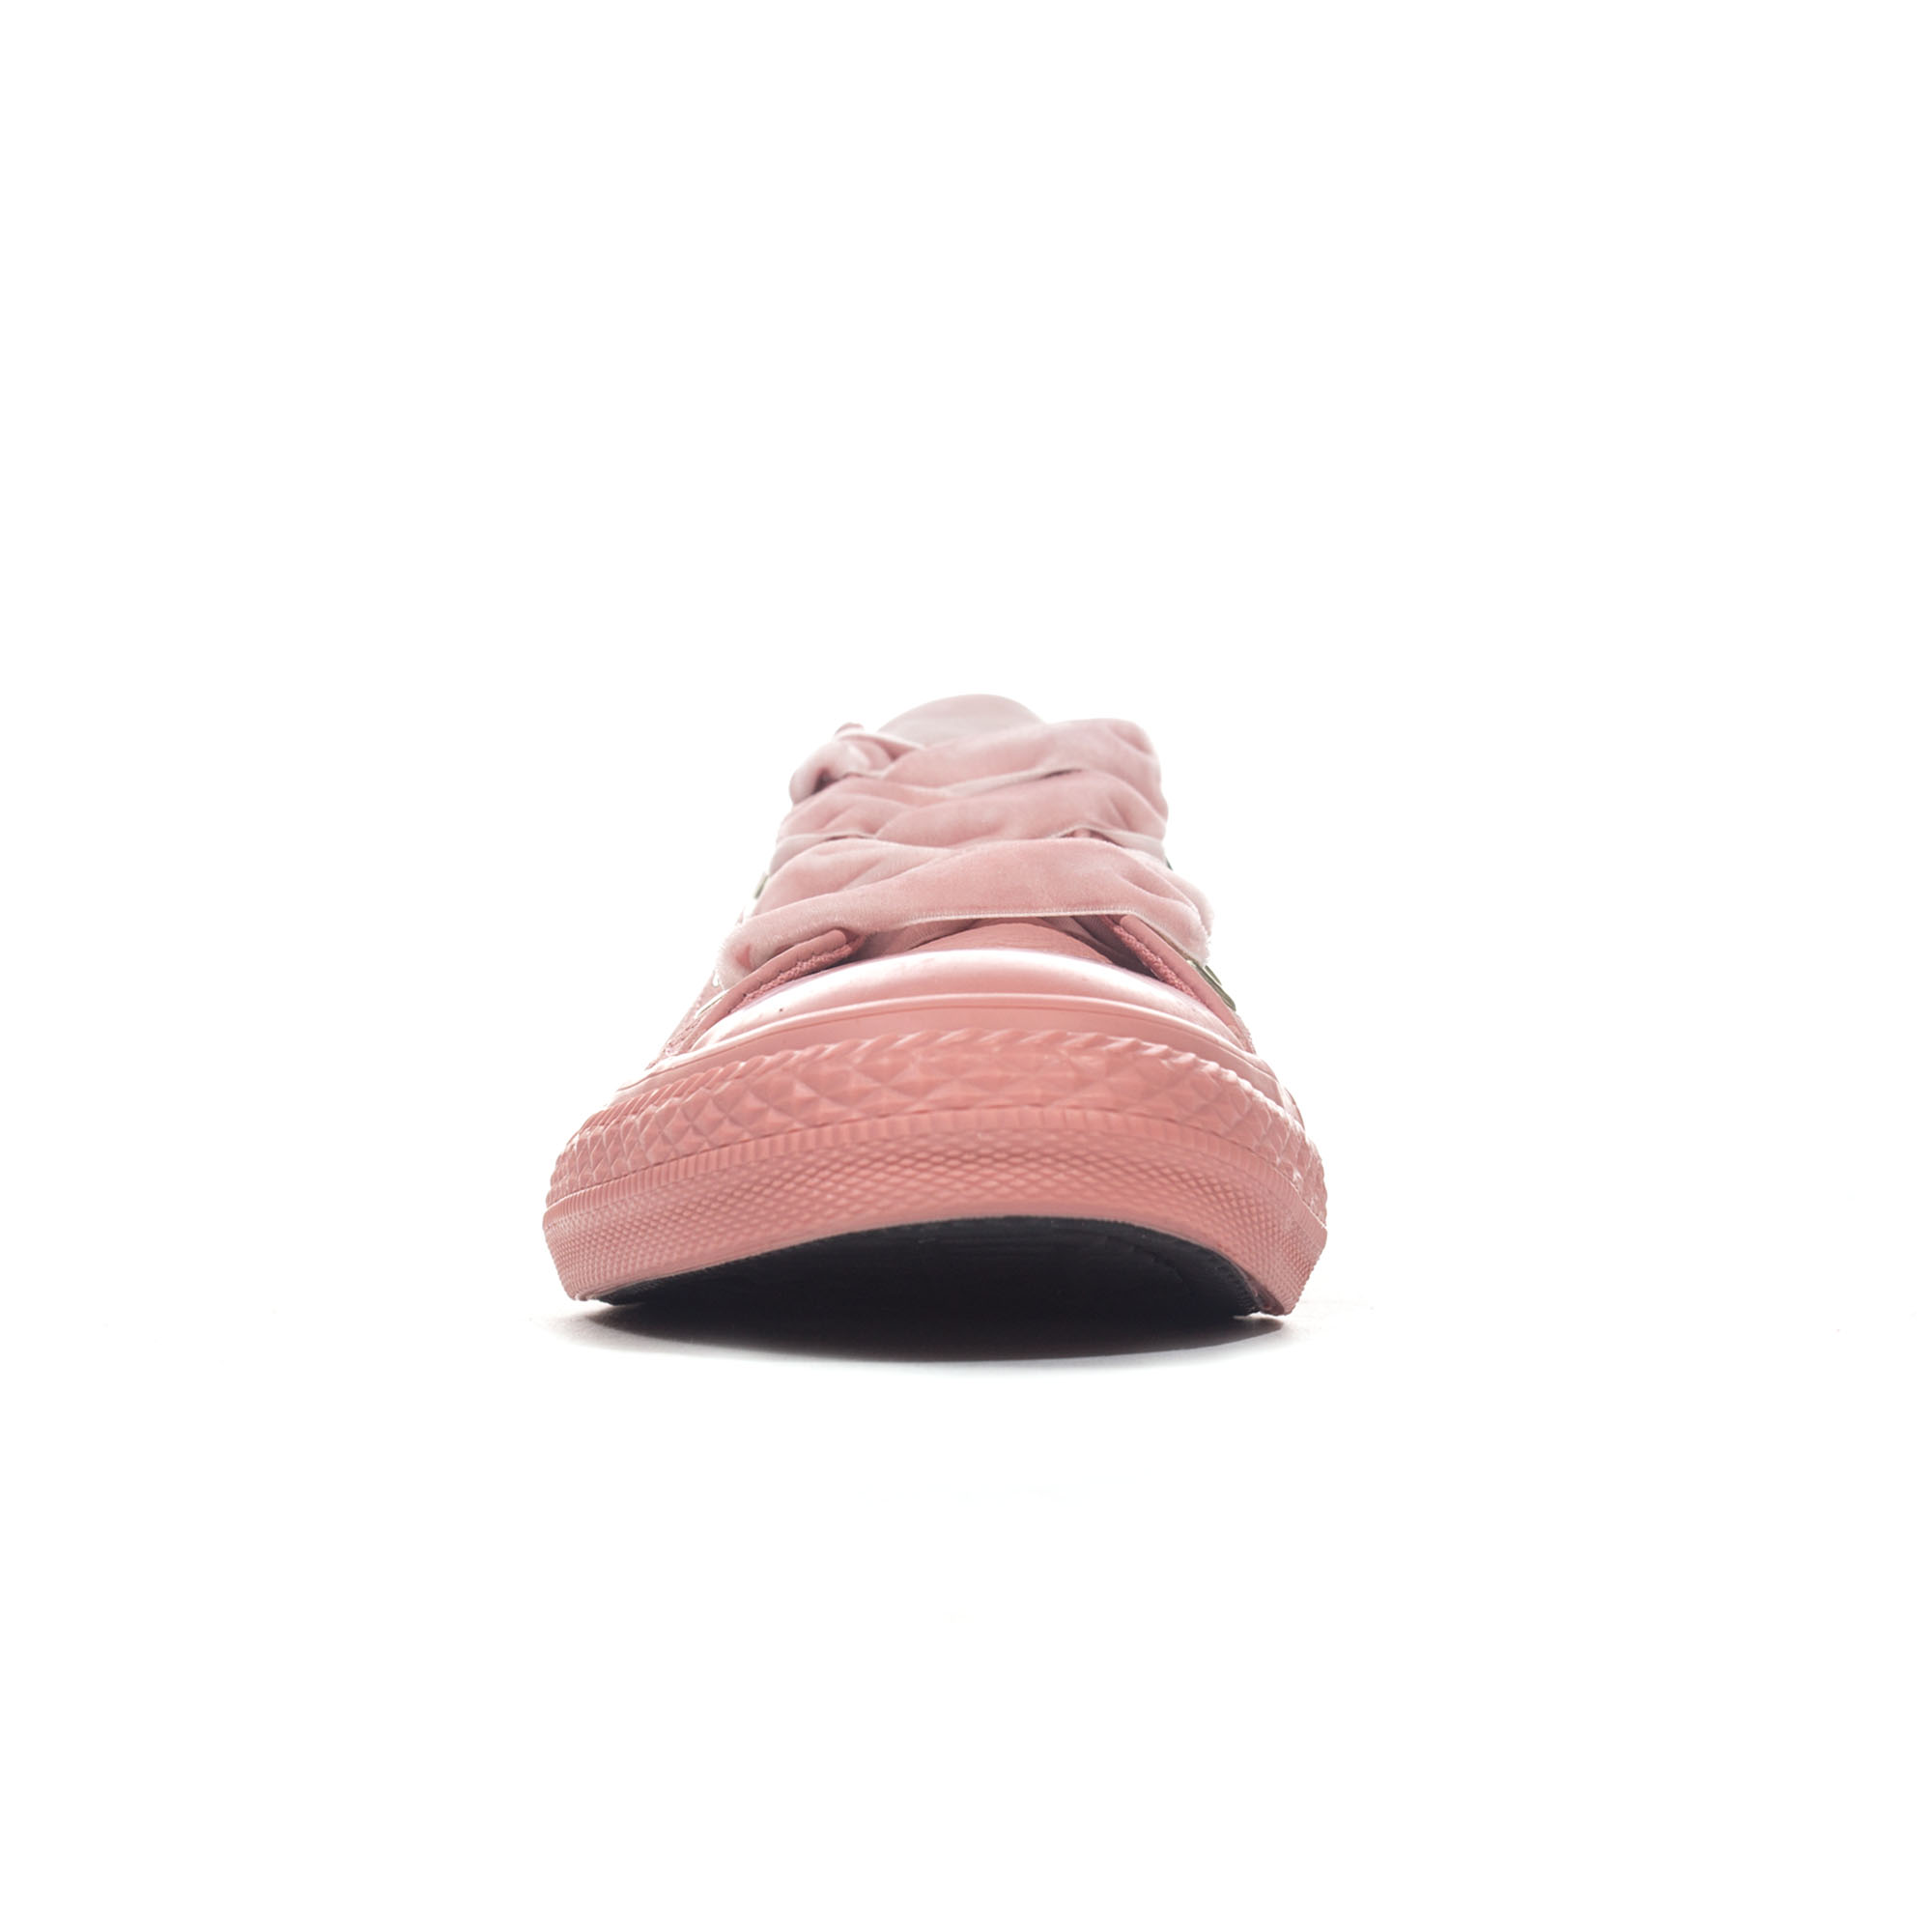 Converse Chuck Taylor All Star Big Eyelets Leather Ox Girls Trainer Rust Pink